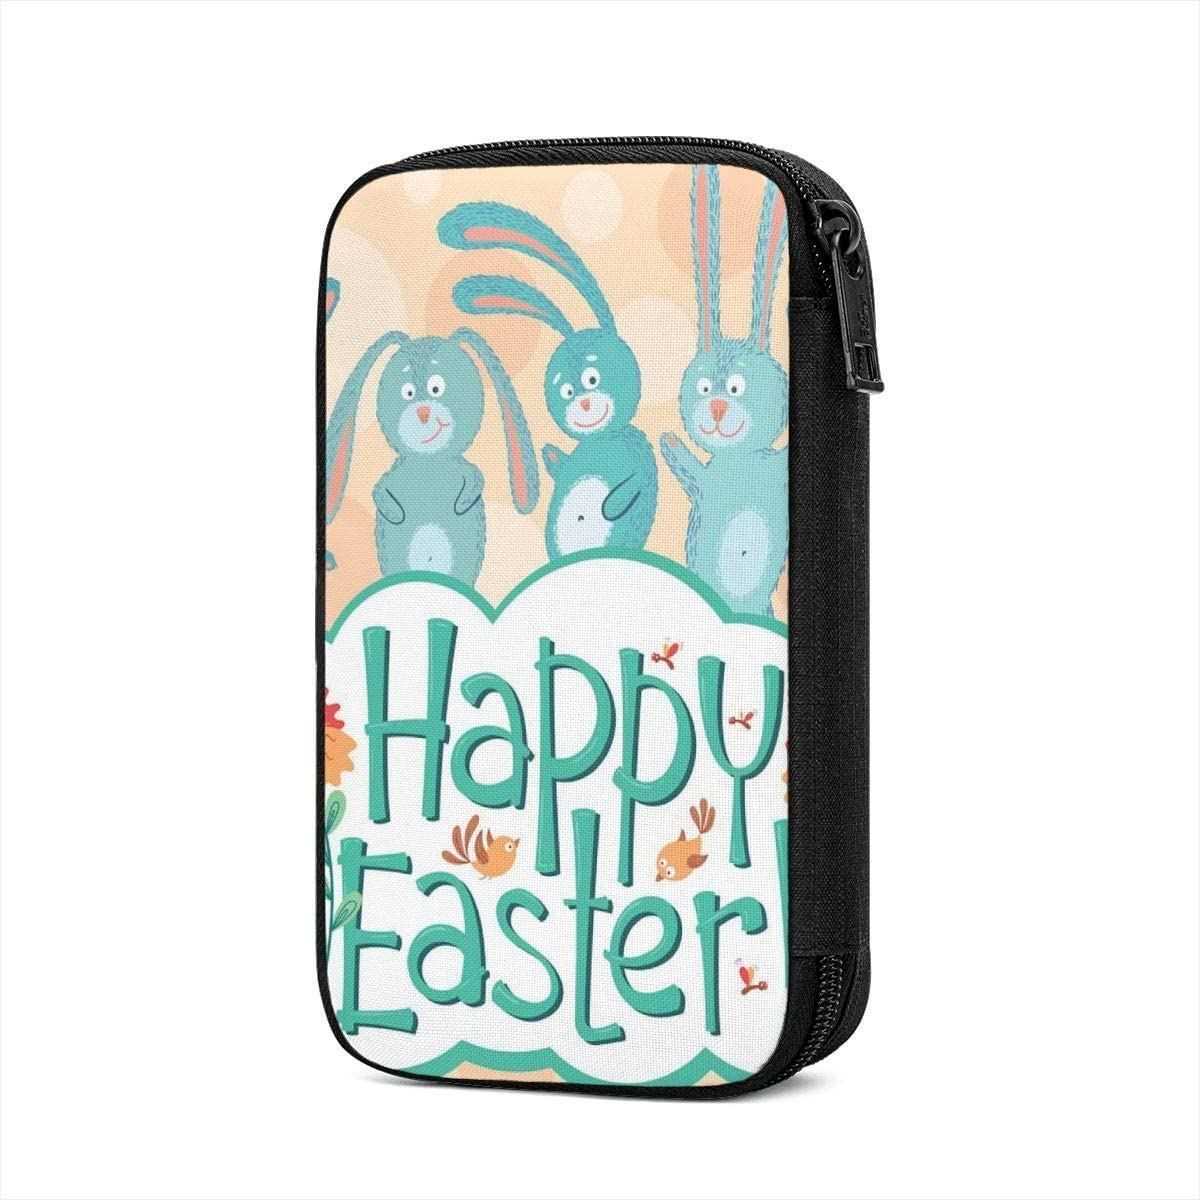 Osvbs Gifts Happy Thanksgiving Electronics Organizer Double for Bag La Los Angeles Mall